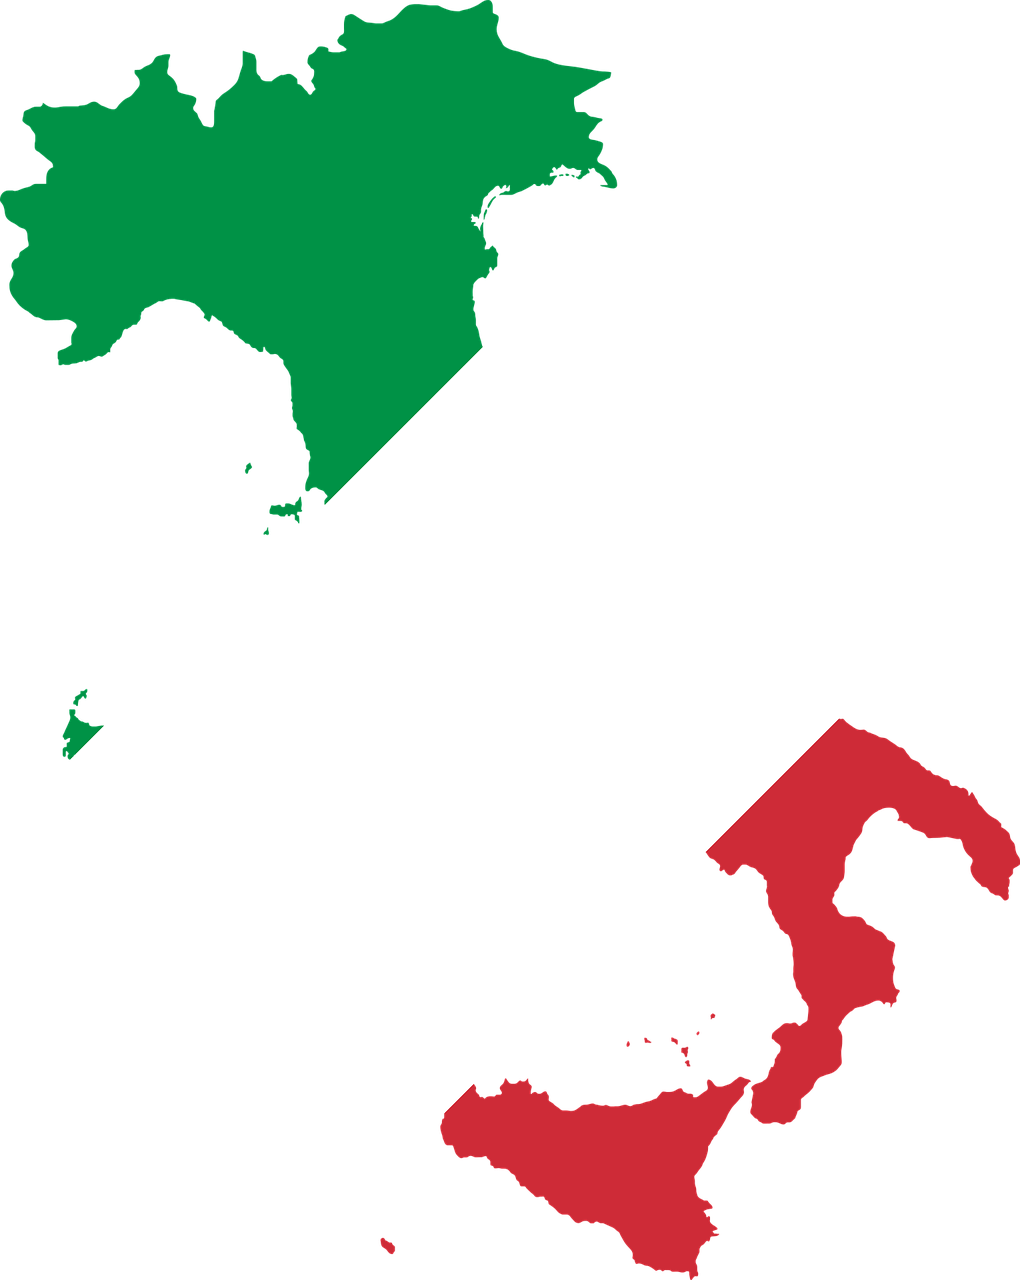 Italy country png. Europe flag borders